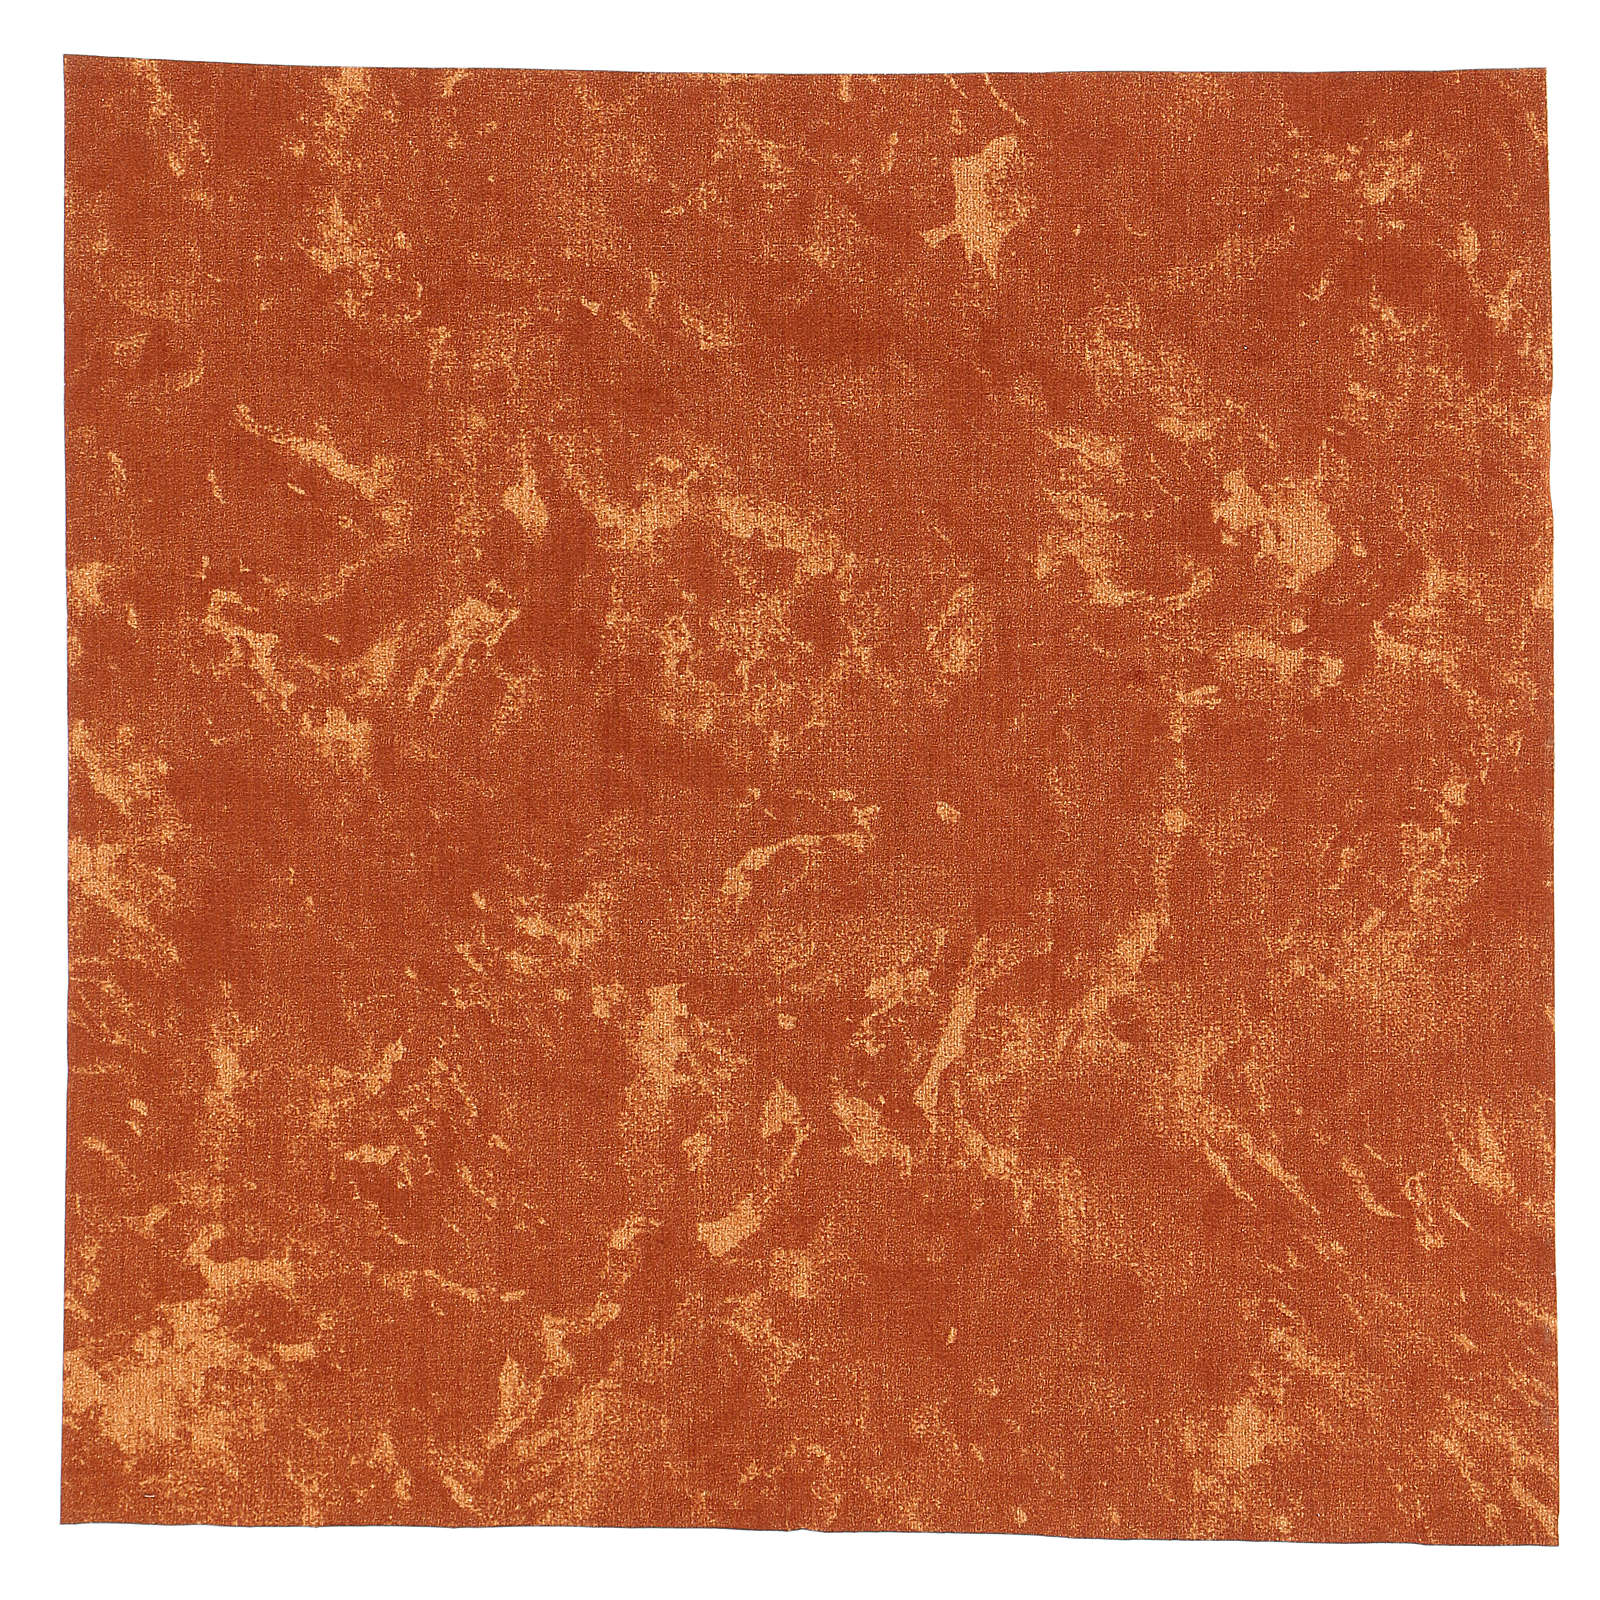 Moudable red earth paper for Nativity scene 30x30 cm 4